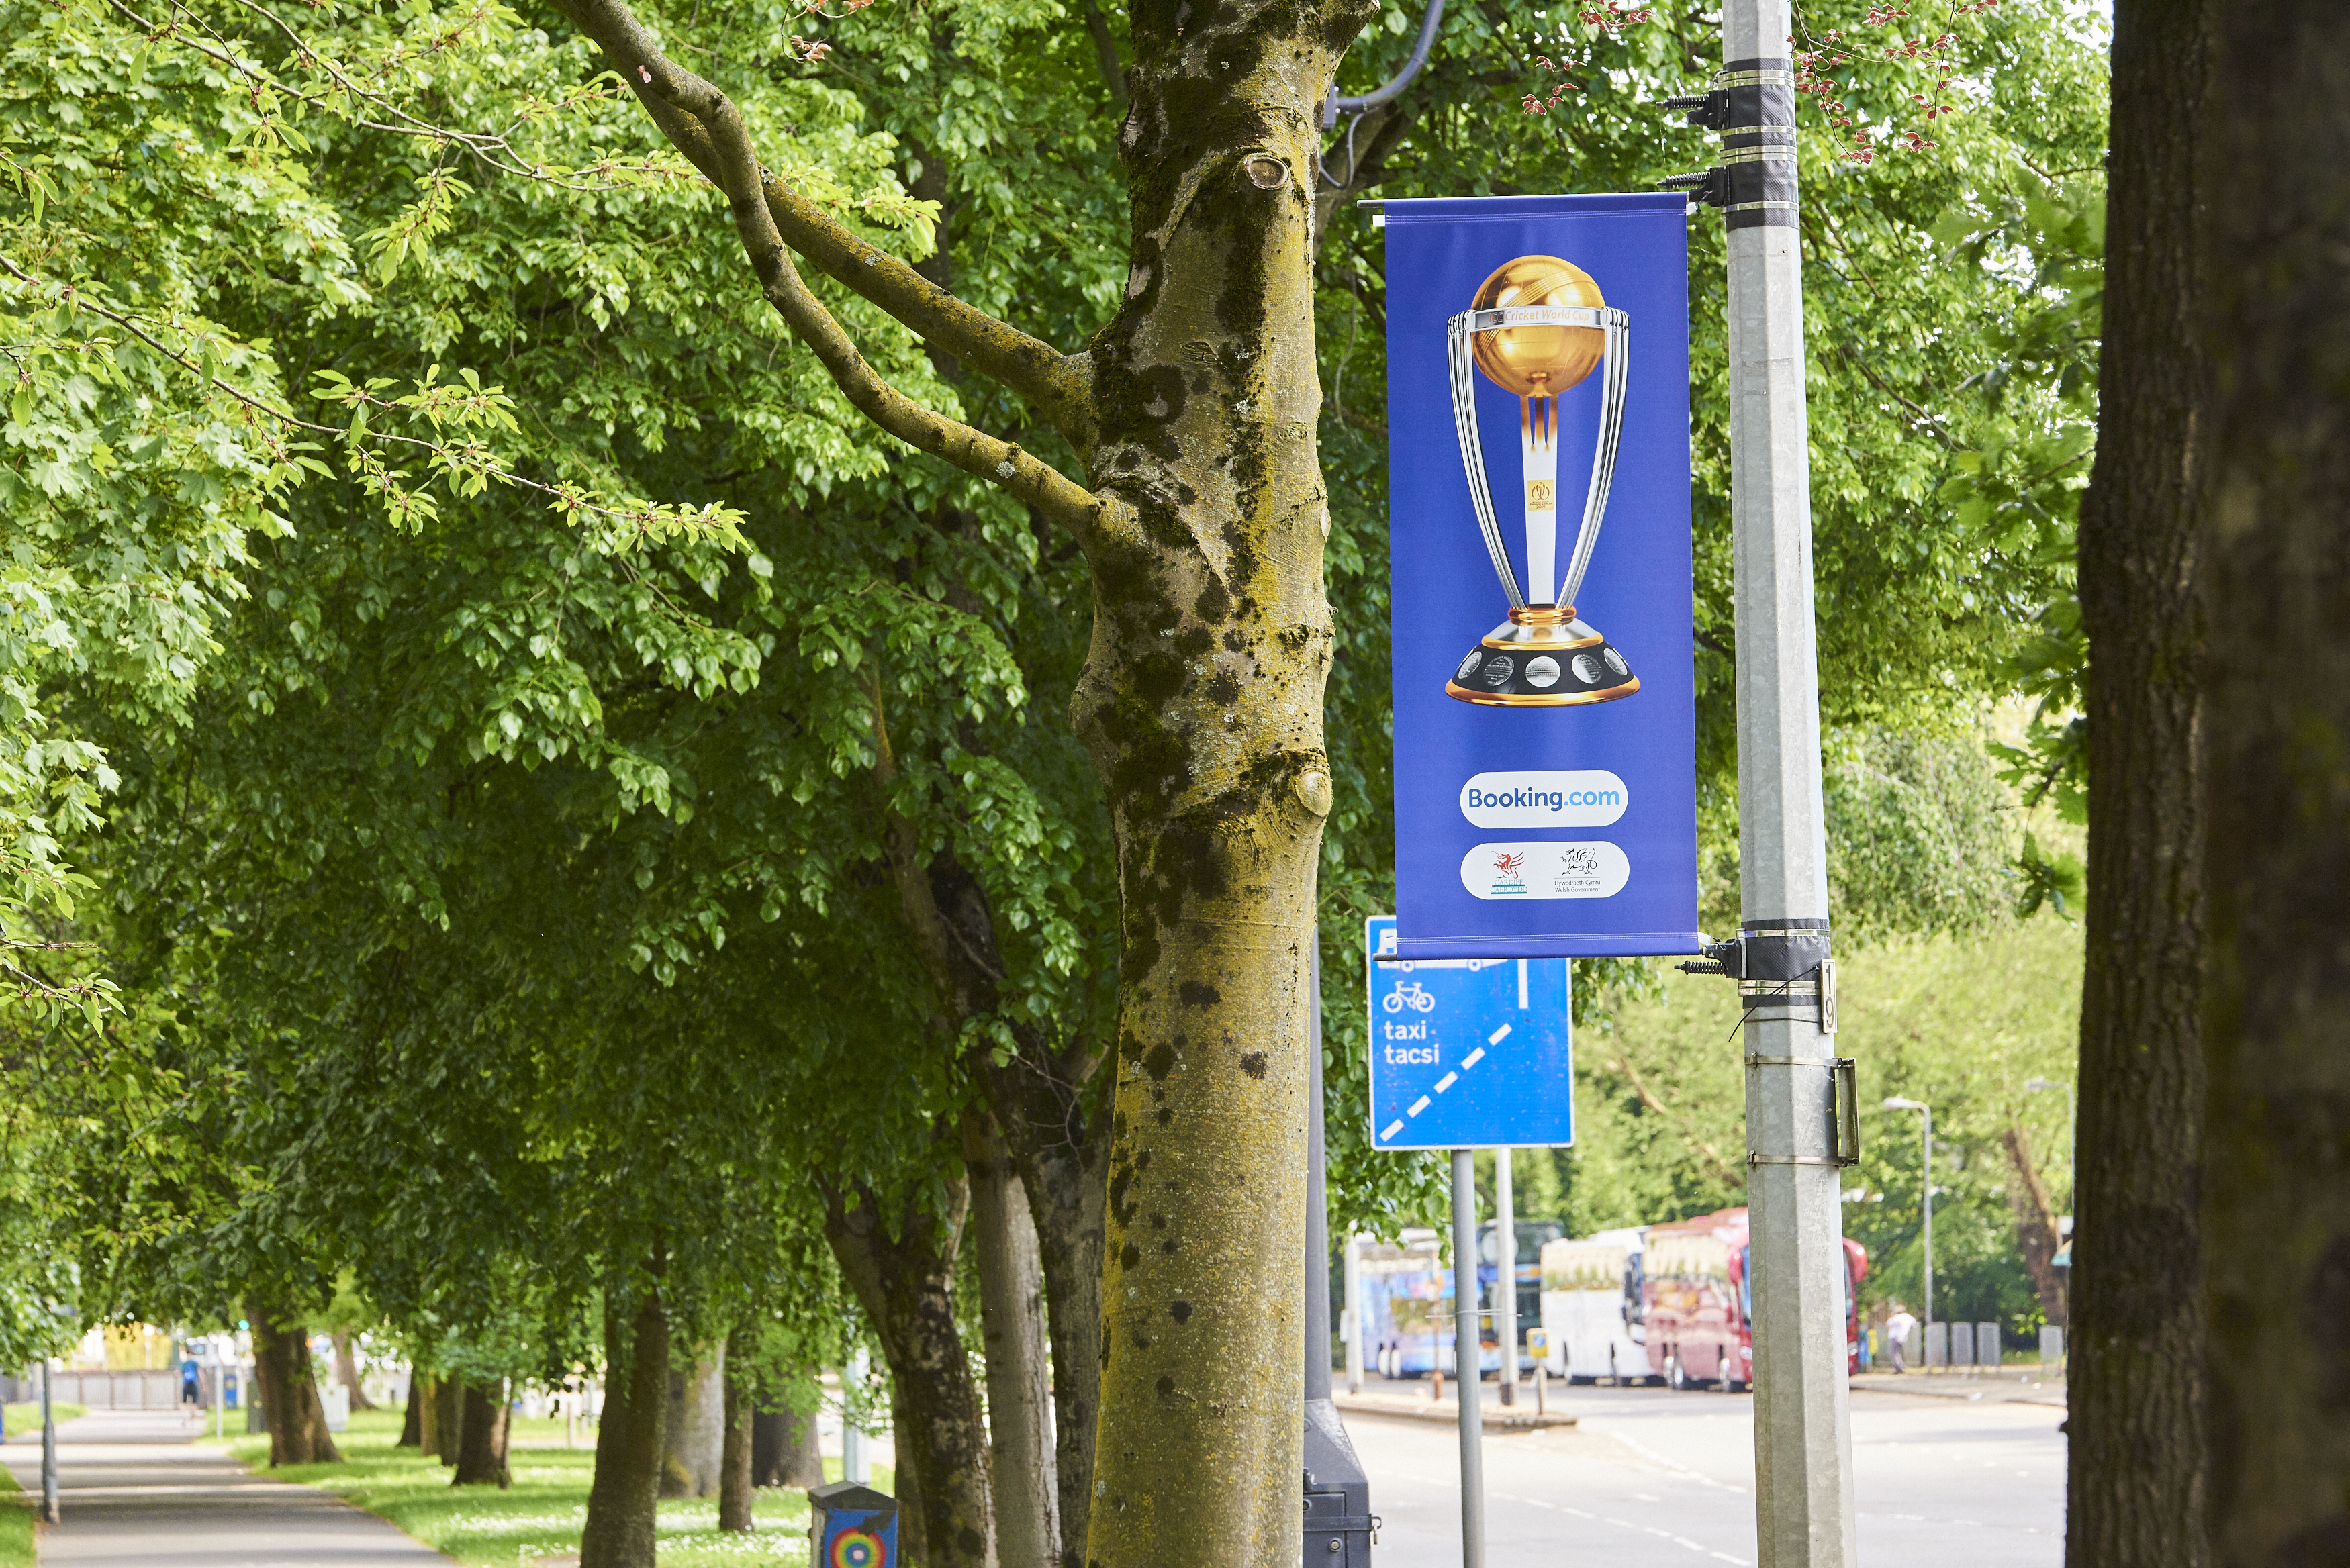 Cardiff - Cricket World Cup [2019] (7)